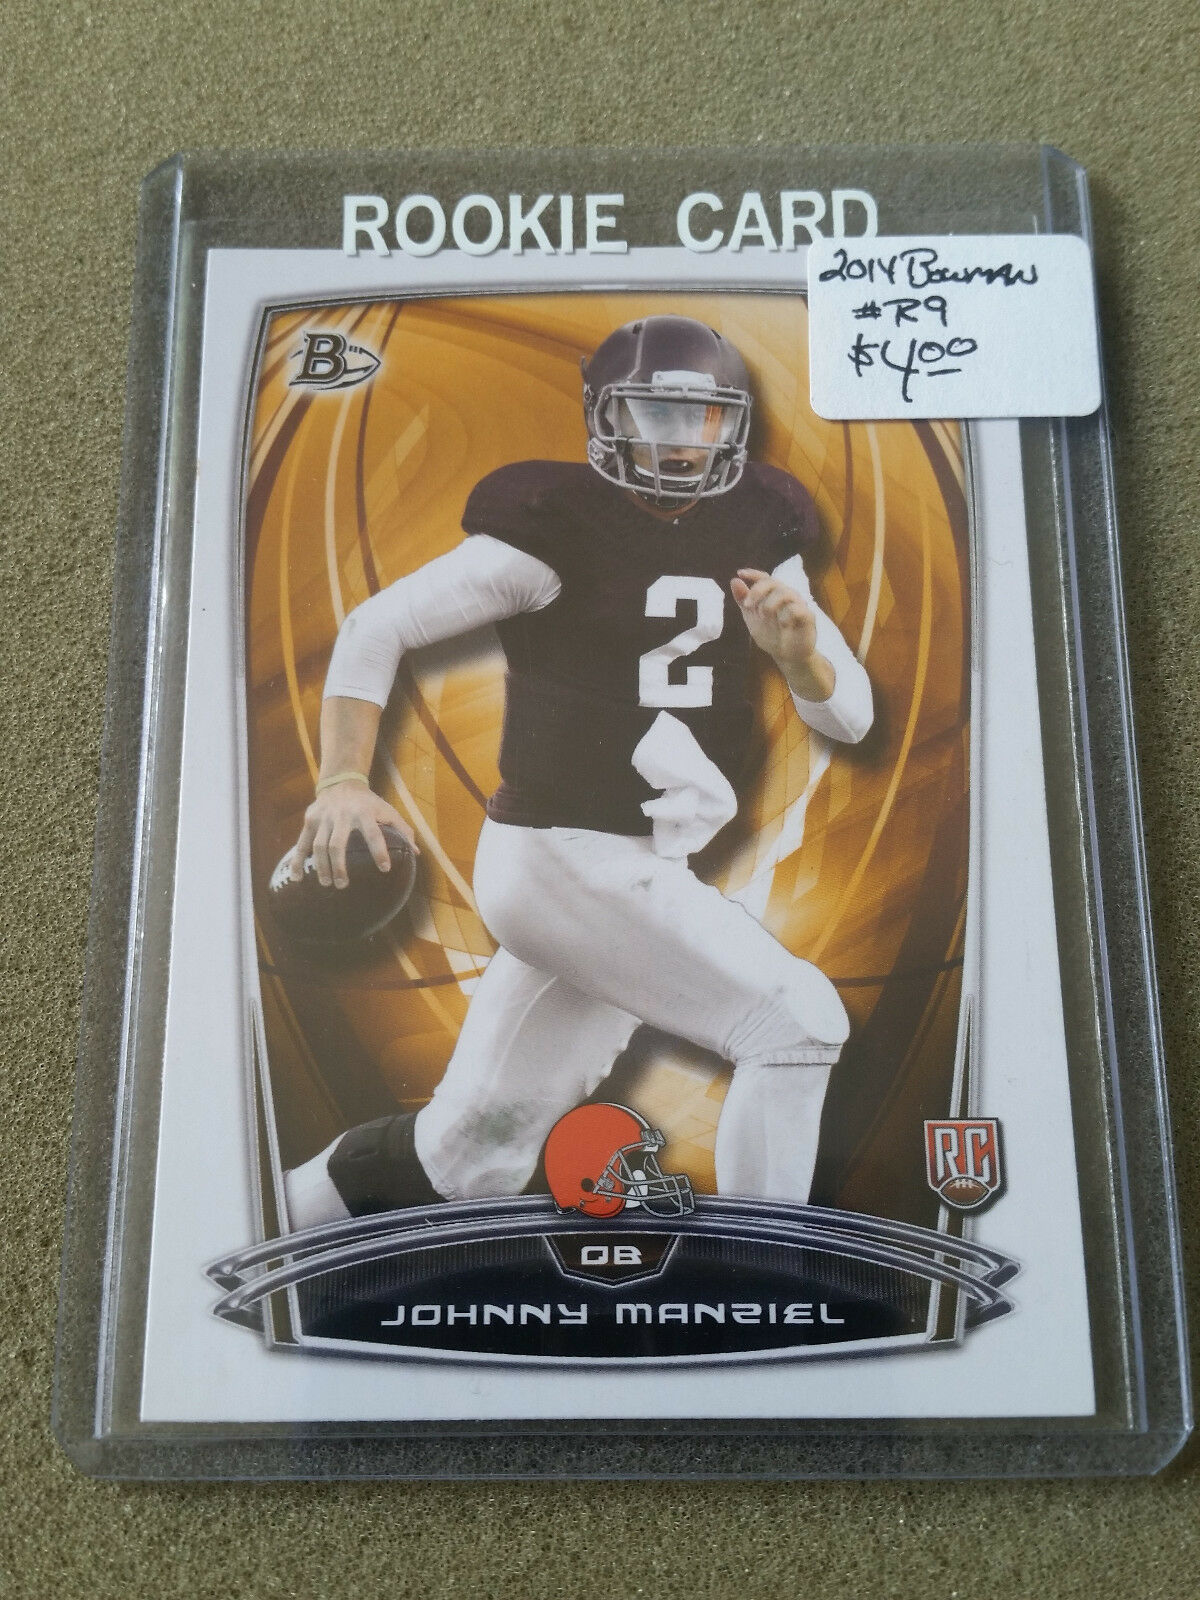 Primary image for 2014 Bowman #R9 Johnny Manziel RC: Cleveland Browns